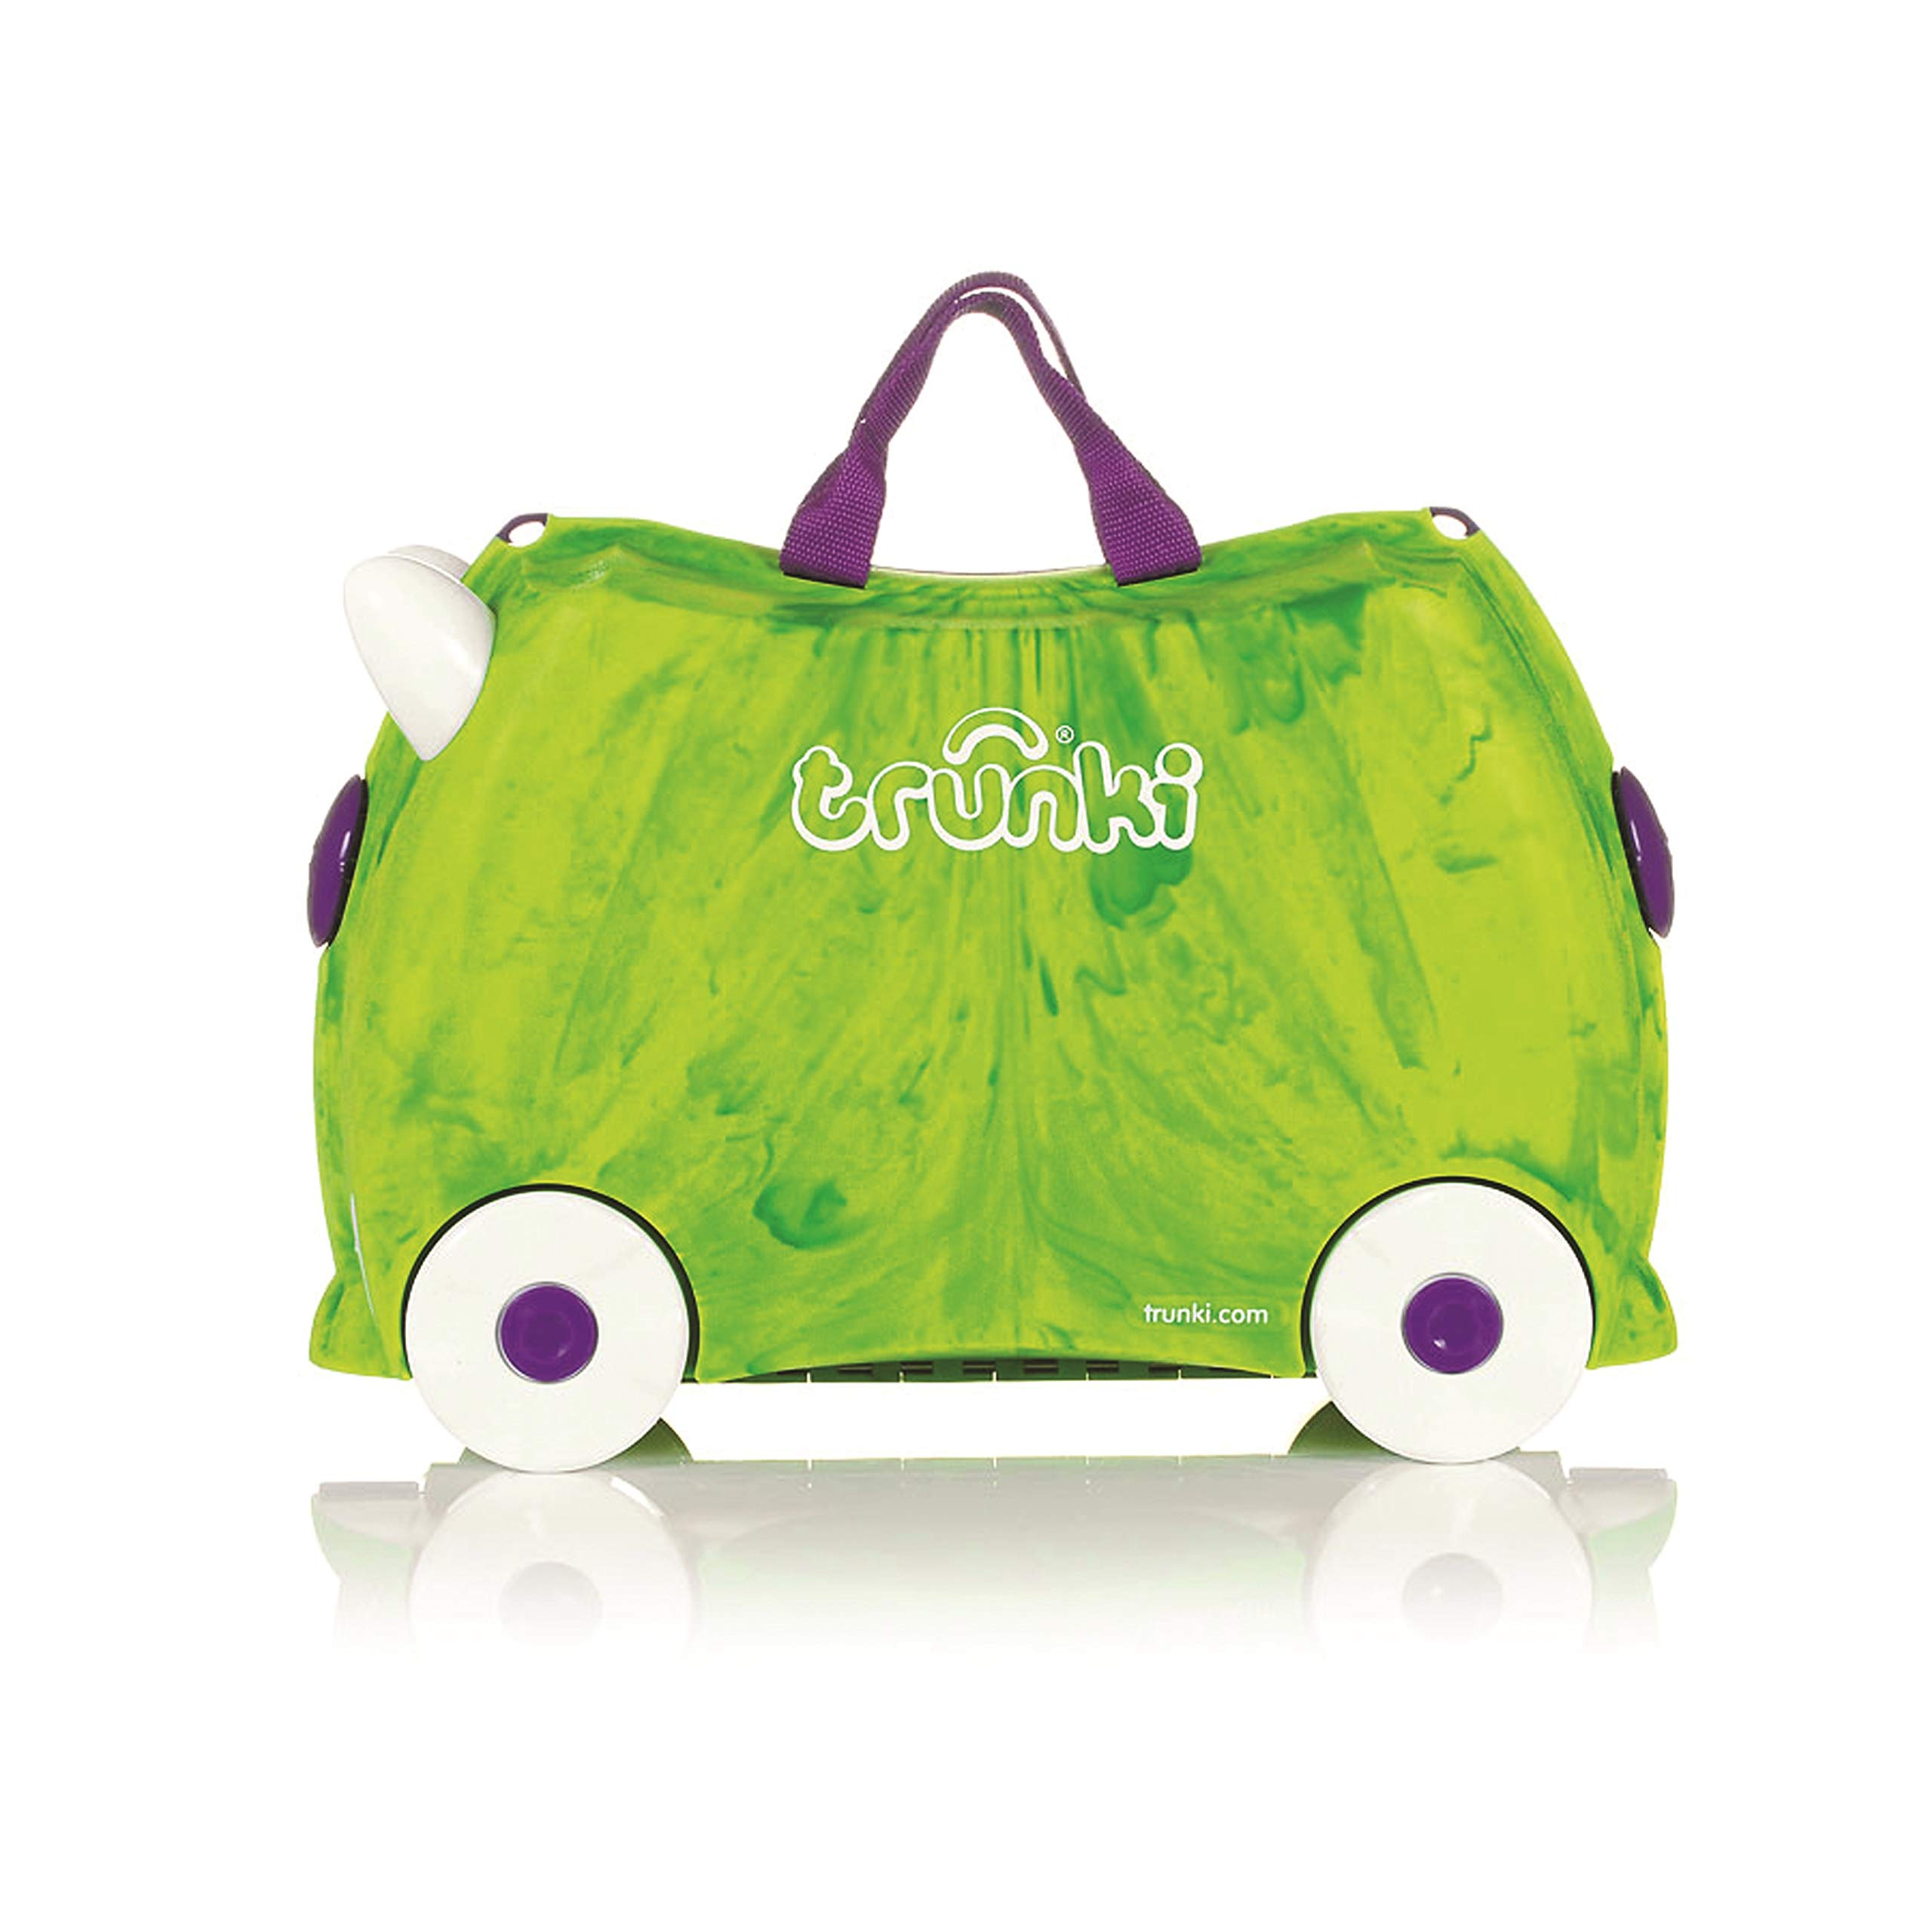 Trunki Original Kids Ride-On Suitcase and Carry-On Luggage - Trunkisauras Rex (Green) by Trunki (Image #3)